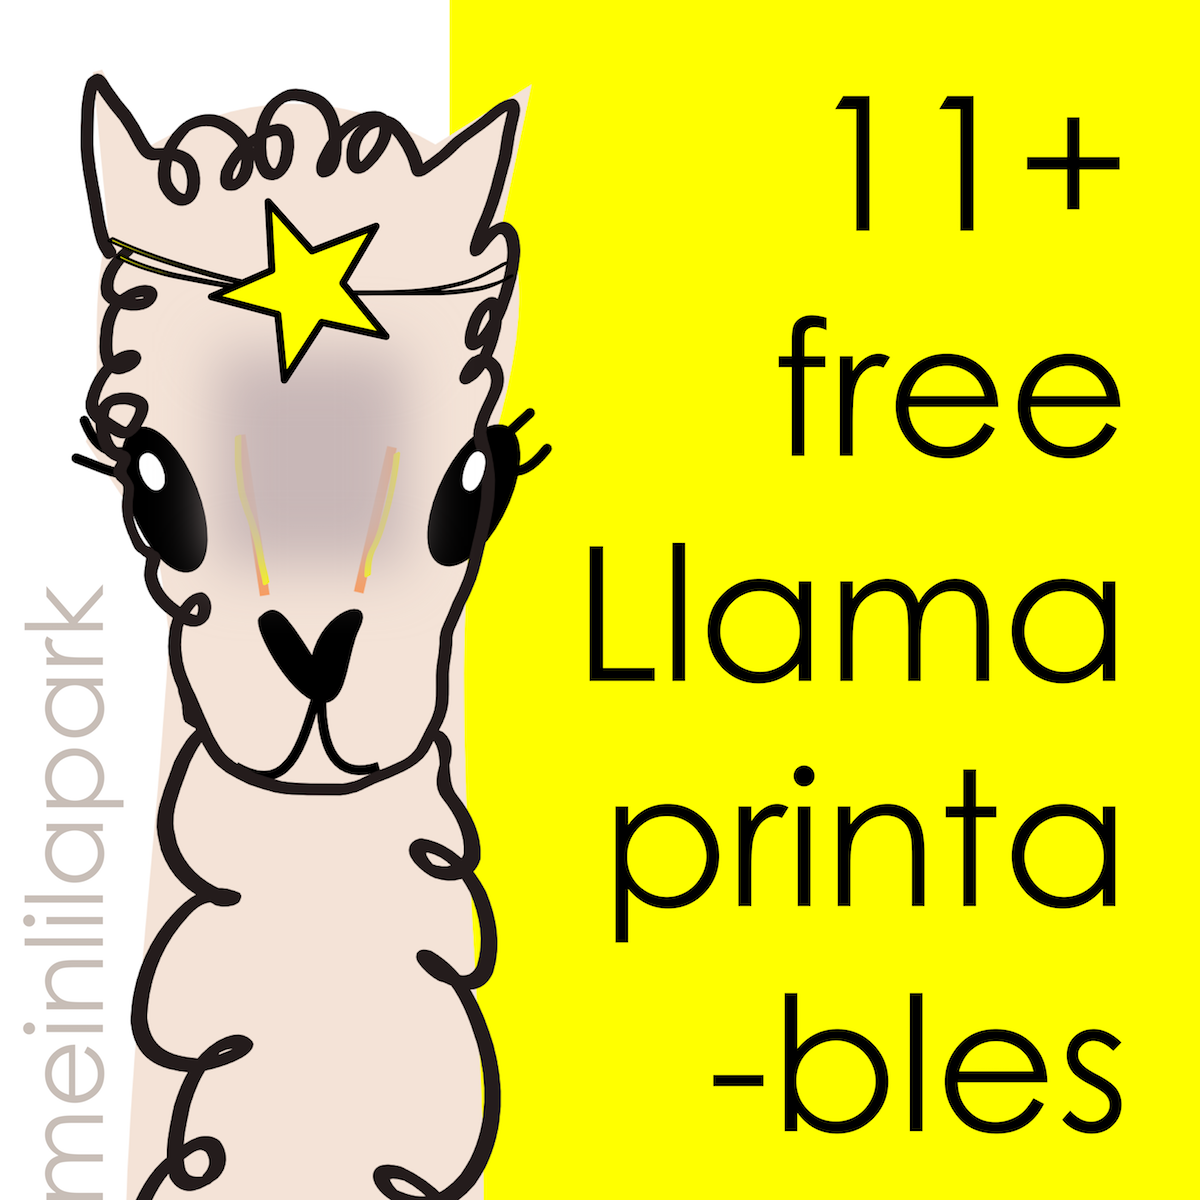 photo relating to Llama Printable identify 15 Totally free llama printables and downloads - Lama zum Ausdrucken